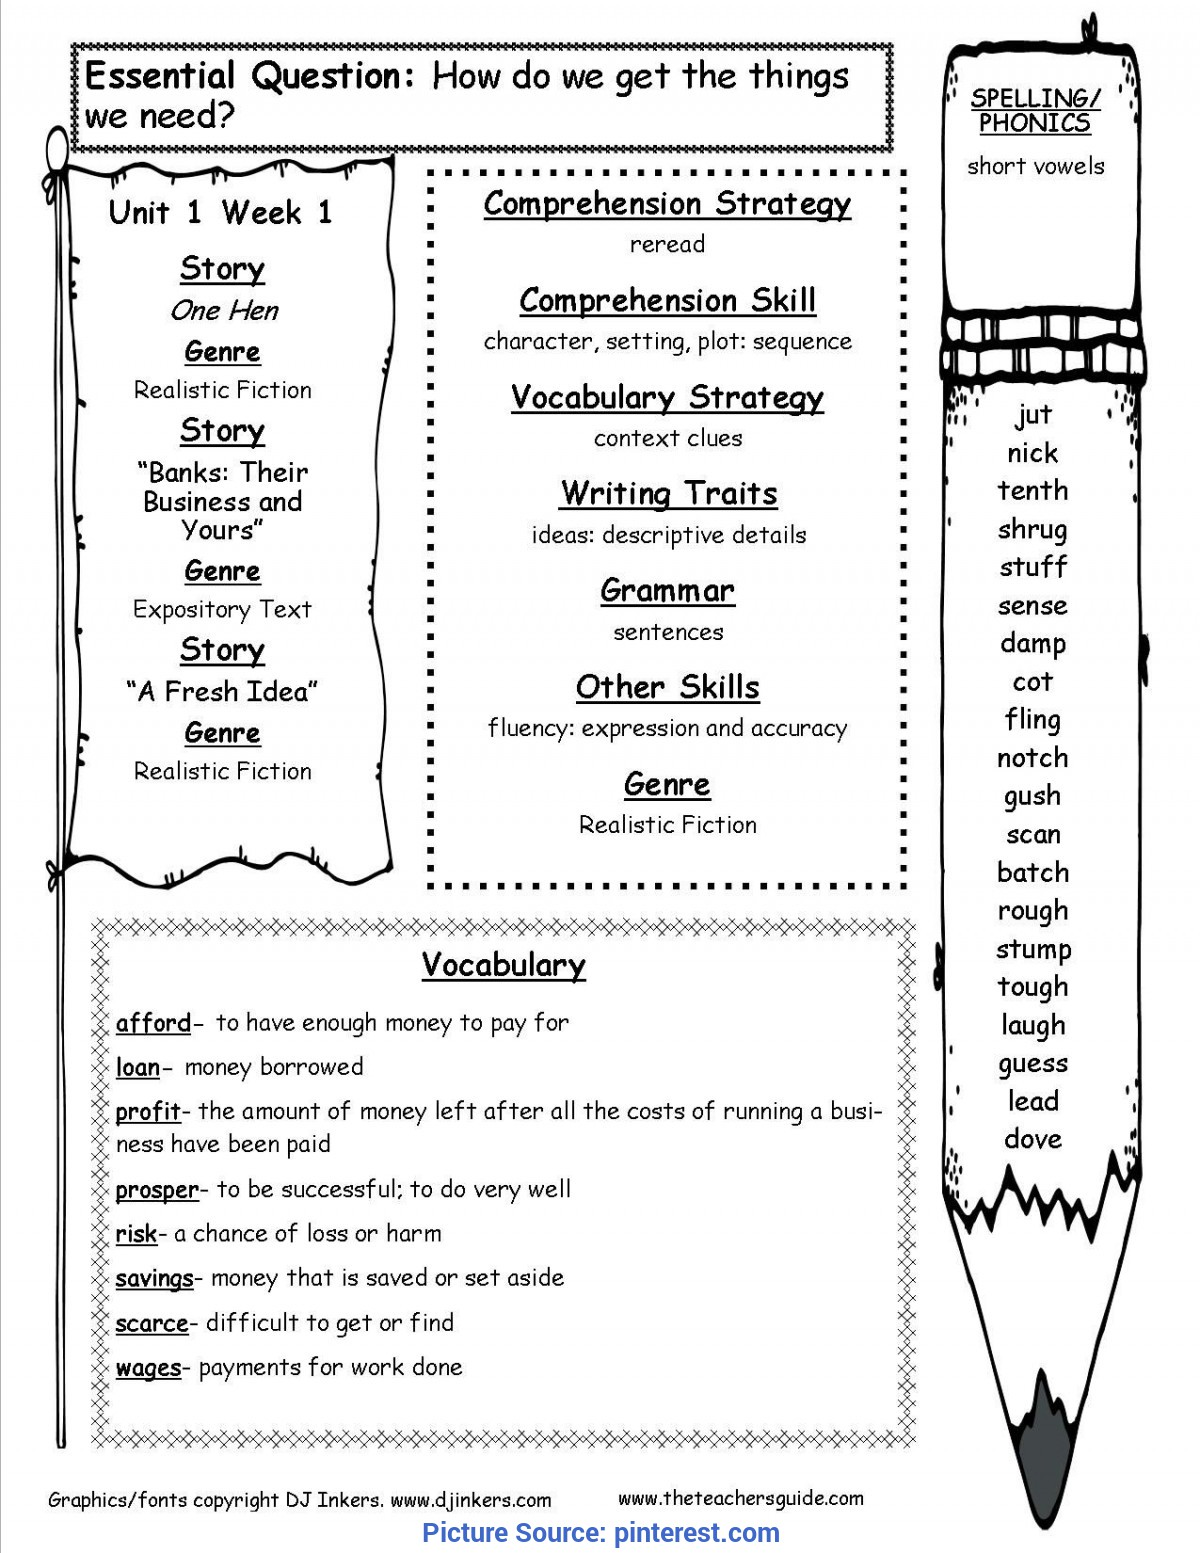 Complex Guided Reading Program McGraw-Hill Wonders Fifth Grade Resources And Printouts | Readin